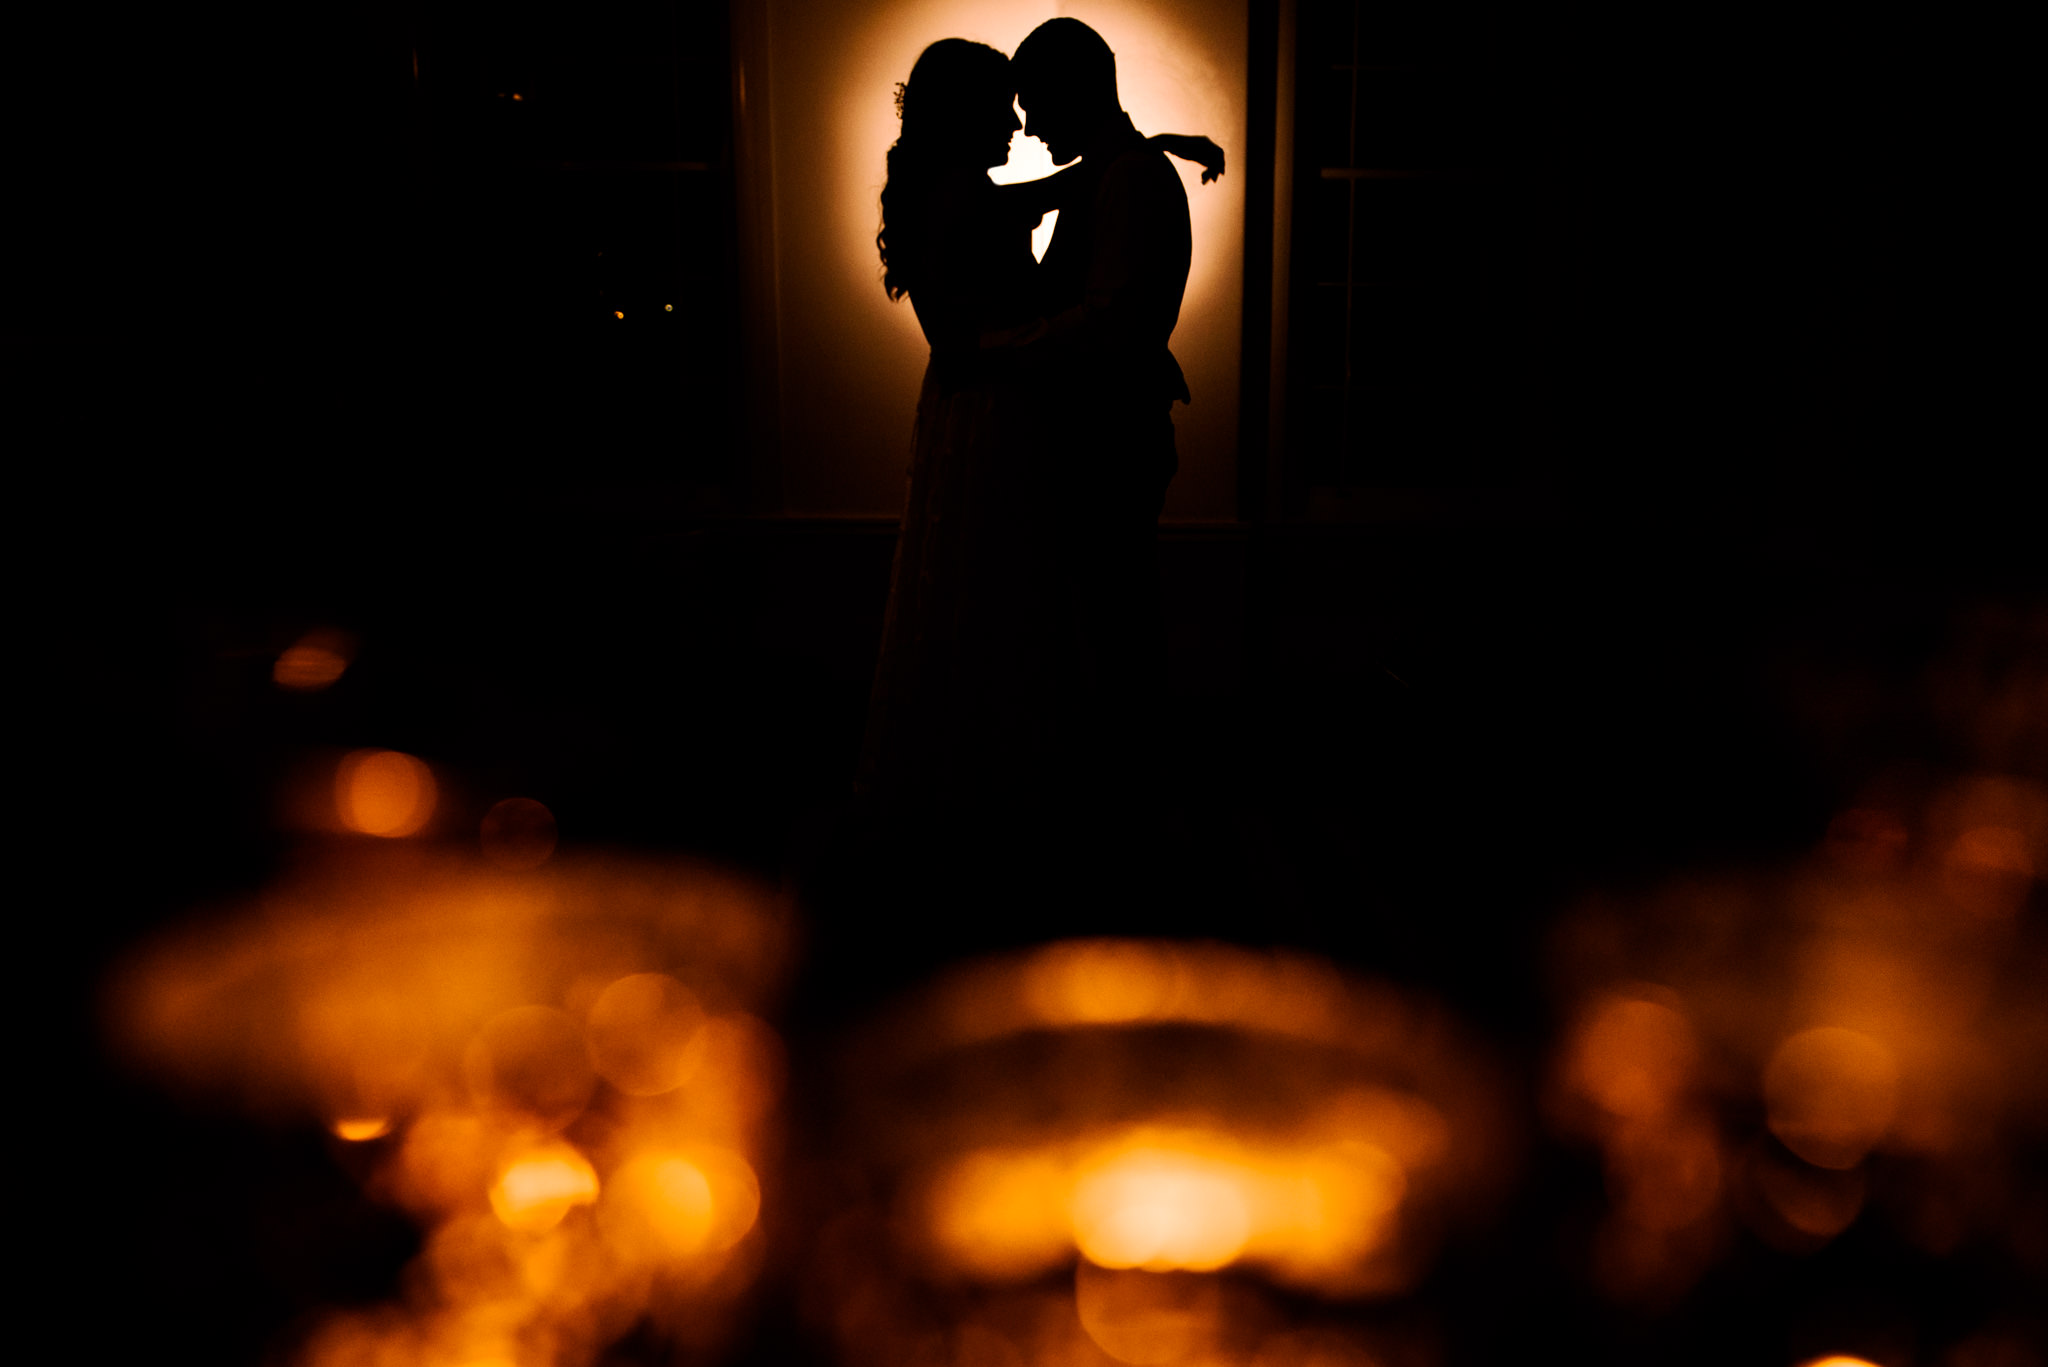 Bride and groom embrace amongst candlelight at wedding reception